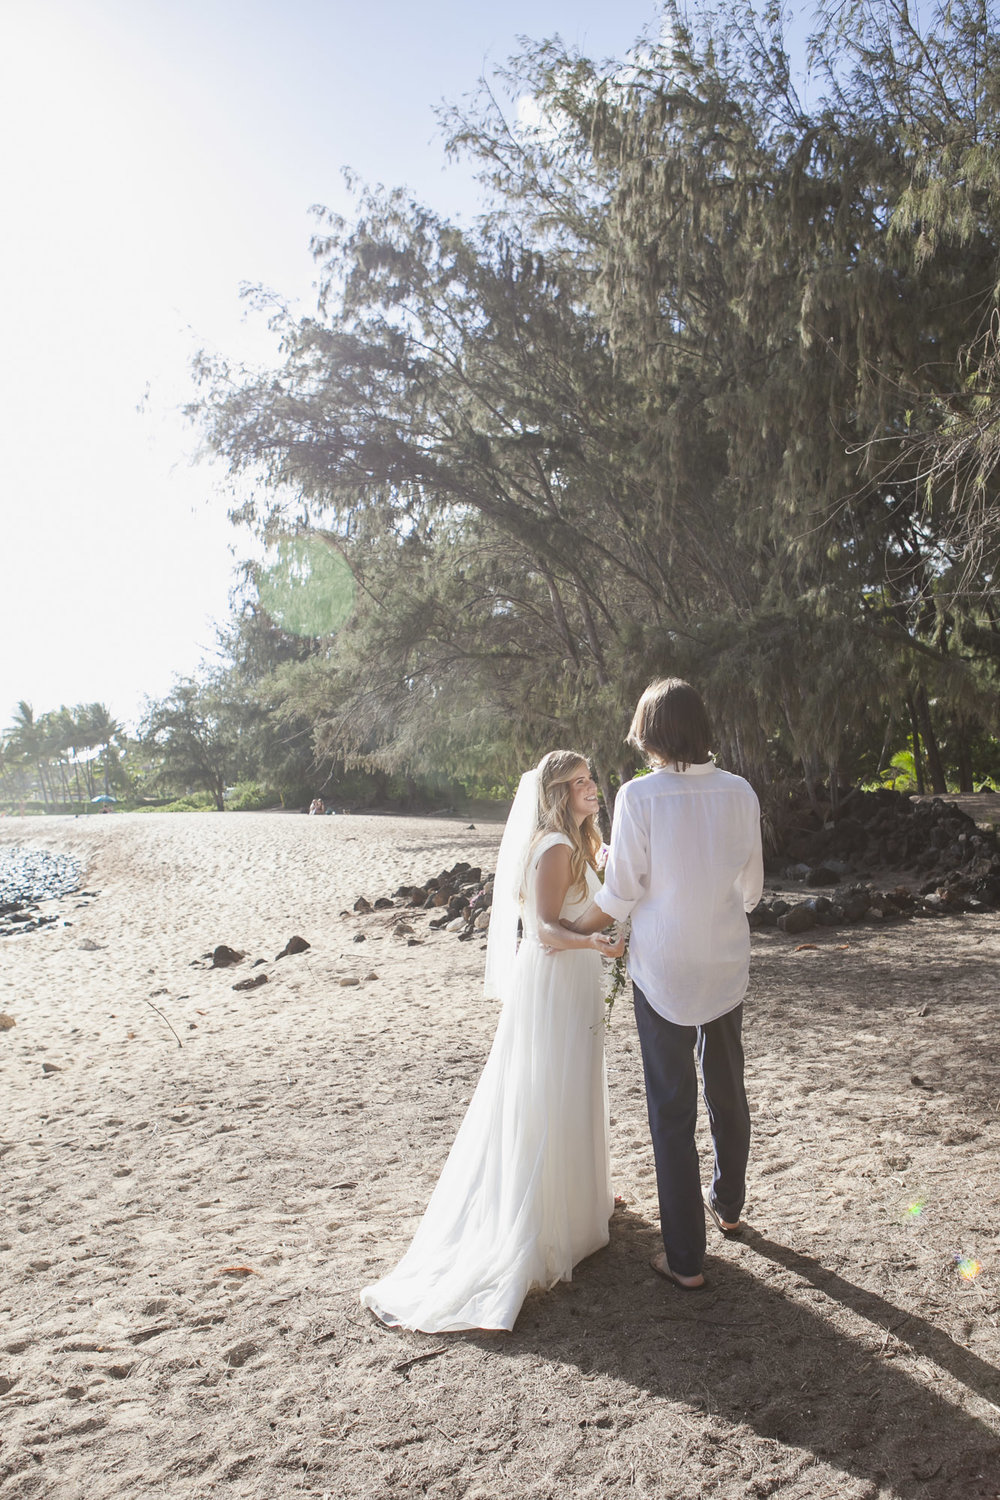 031_Laid_Back_Hawaiian_Beach_Wedding.jpg